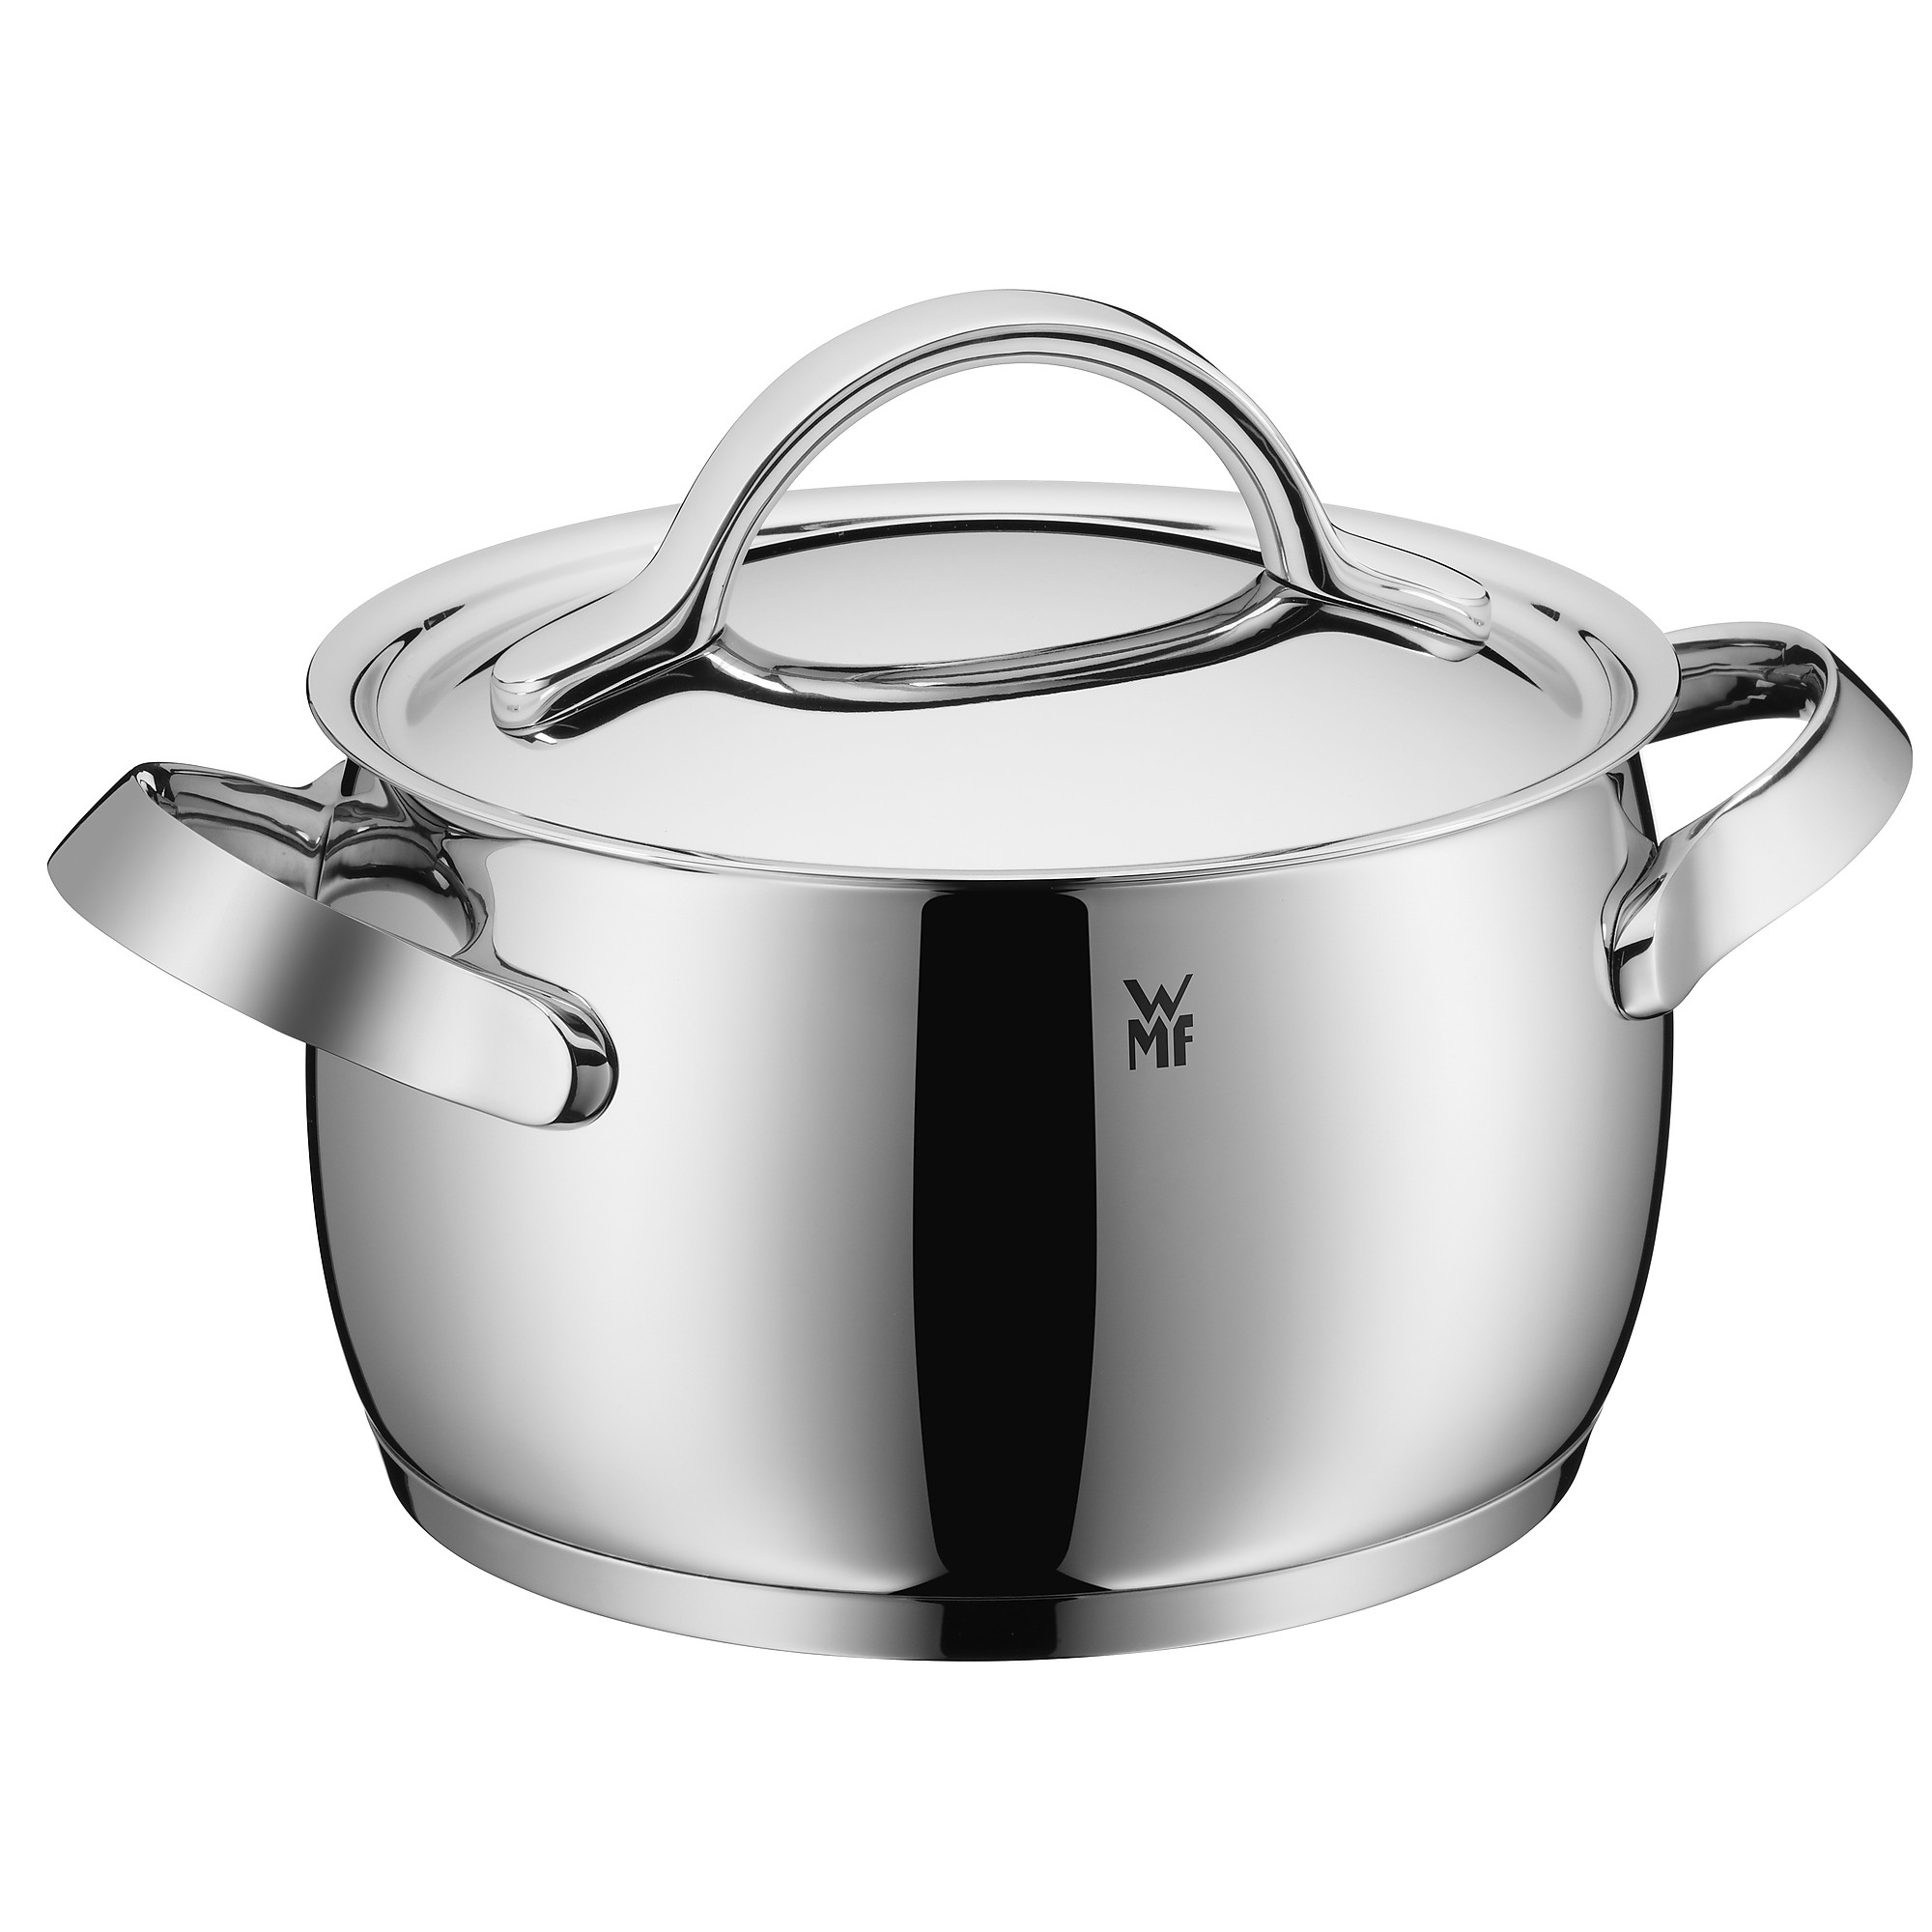 WMF Concento Stainless Steel 4 Quart Covered High Casserole